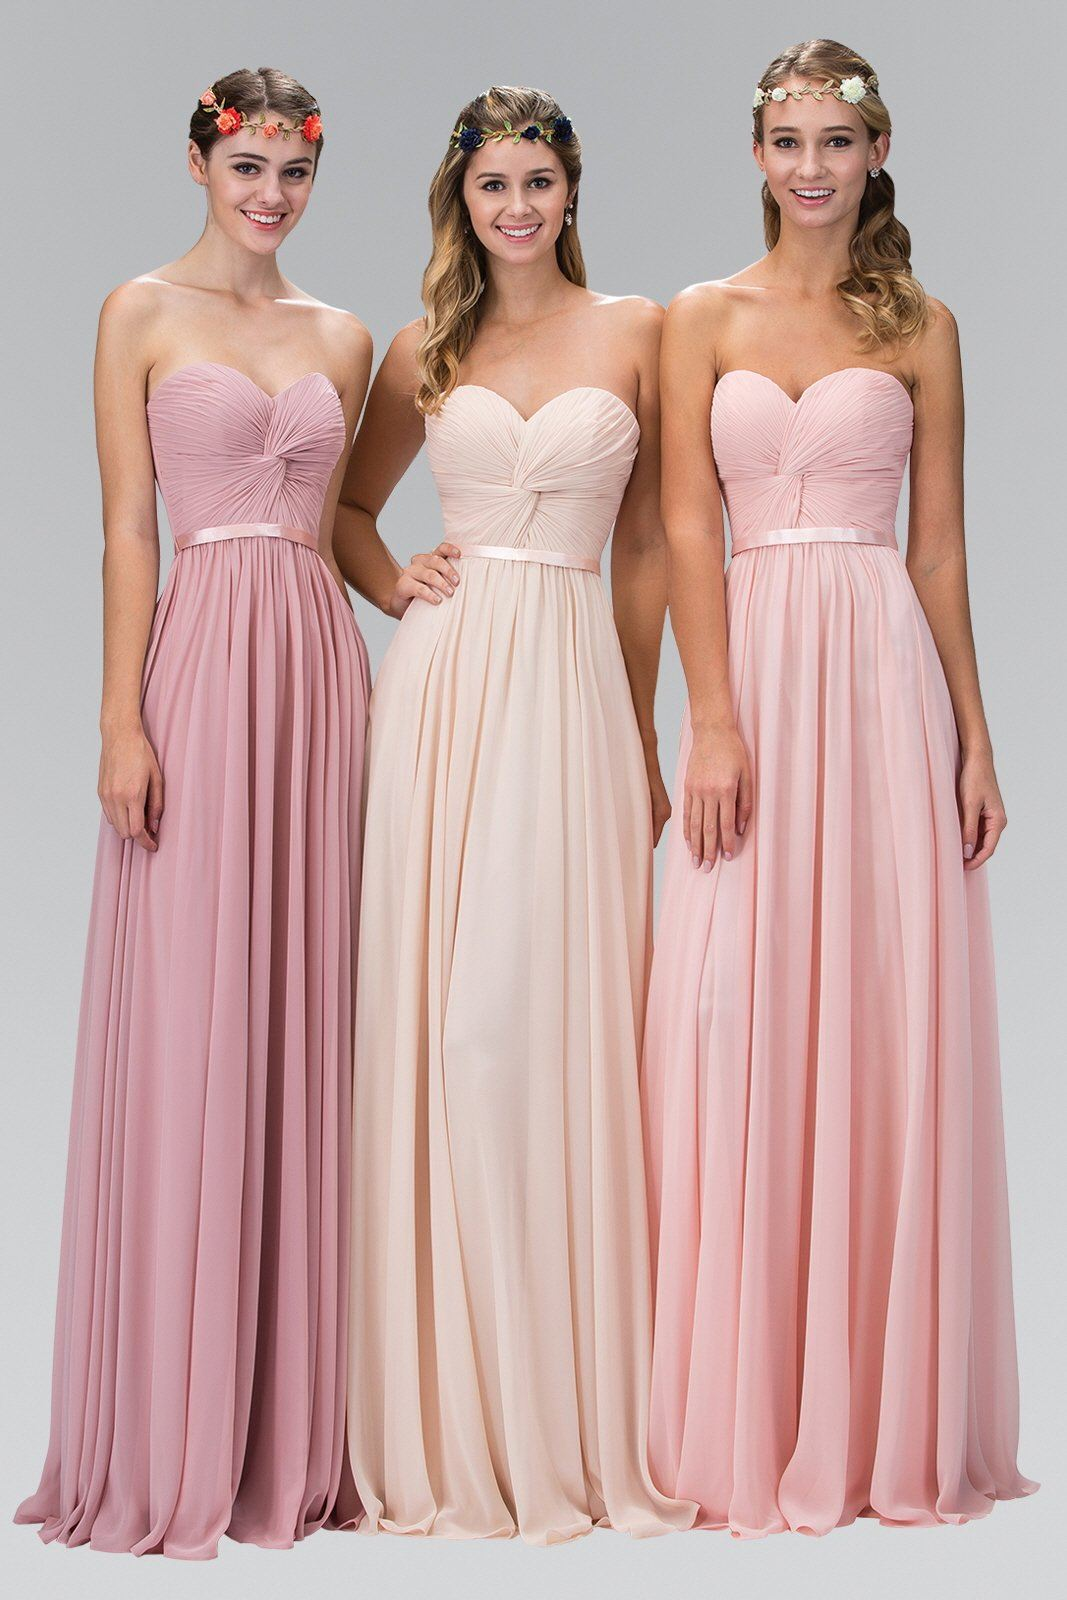 Inexpensive bridesmaid dress simply fab dress inexpensive bridesmaid dress gls gl2069 simply fab dress ombrellifo Image collections